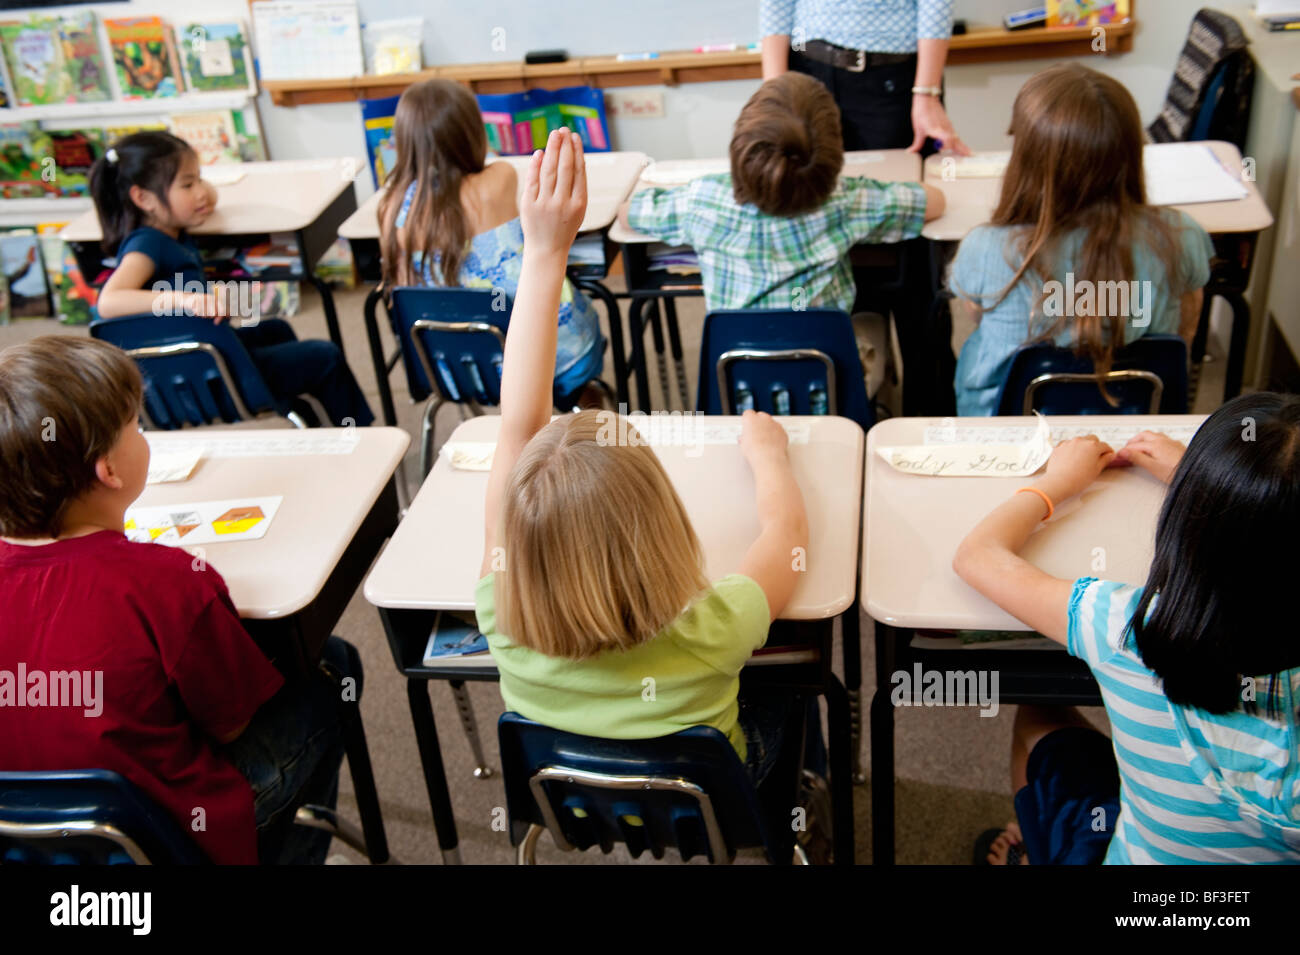 Elementary school class participation - Stock Image